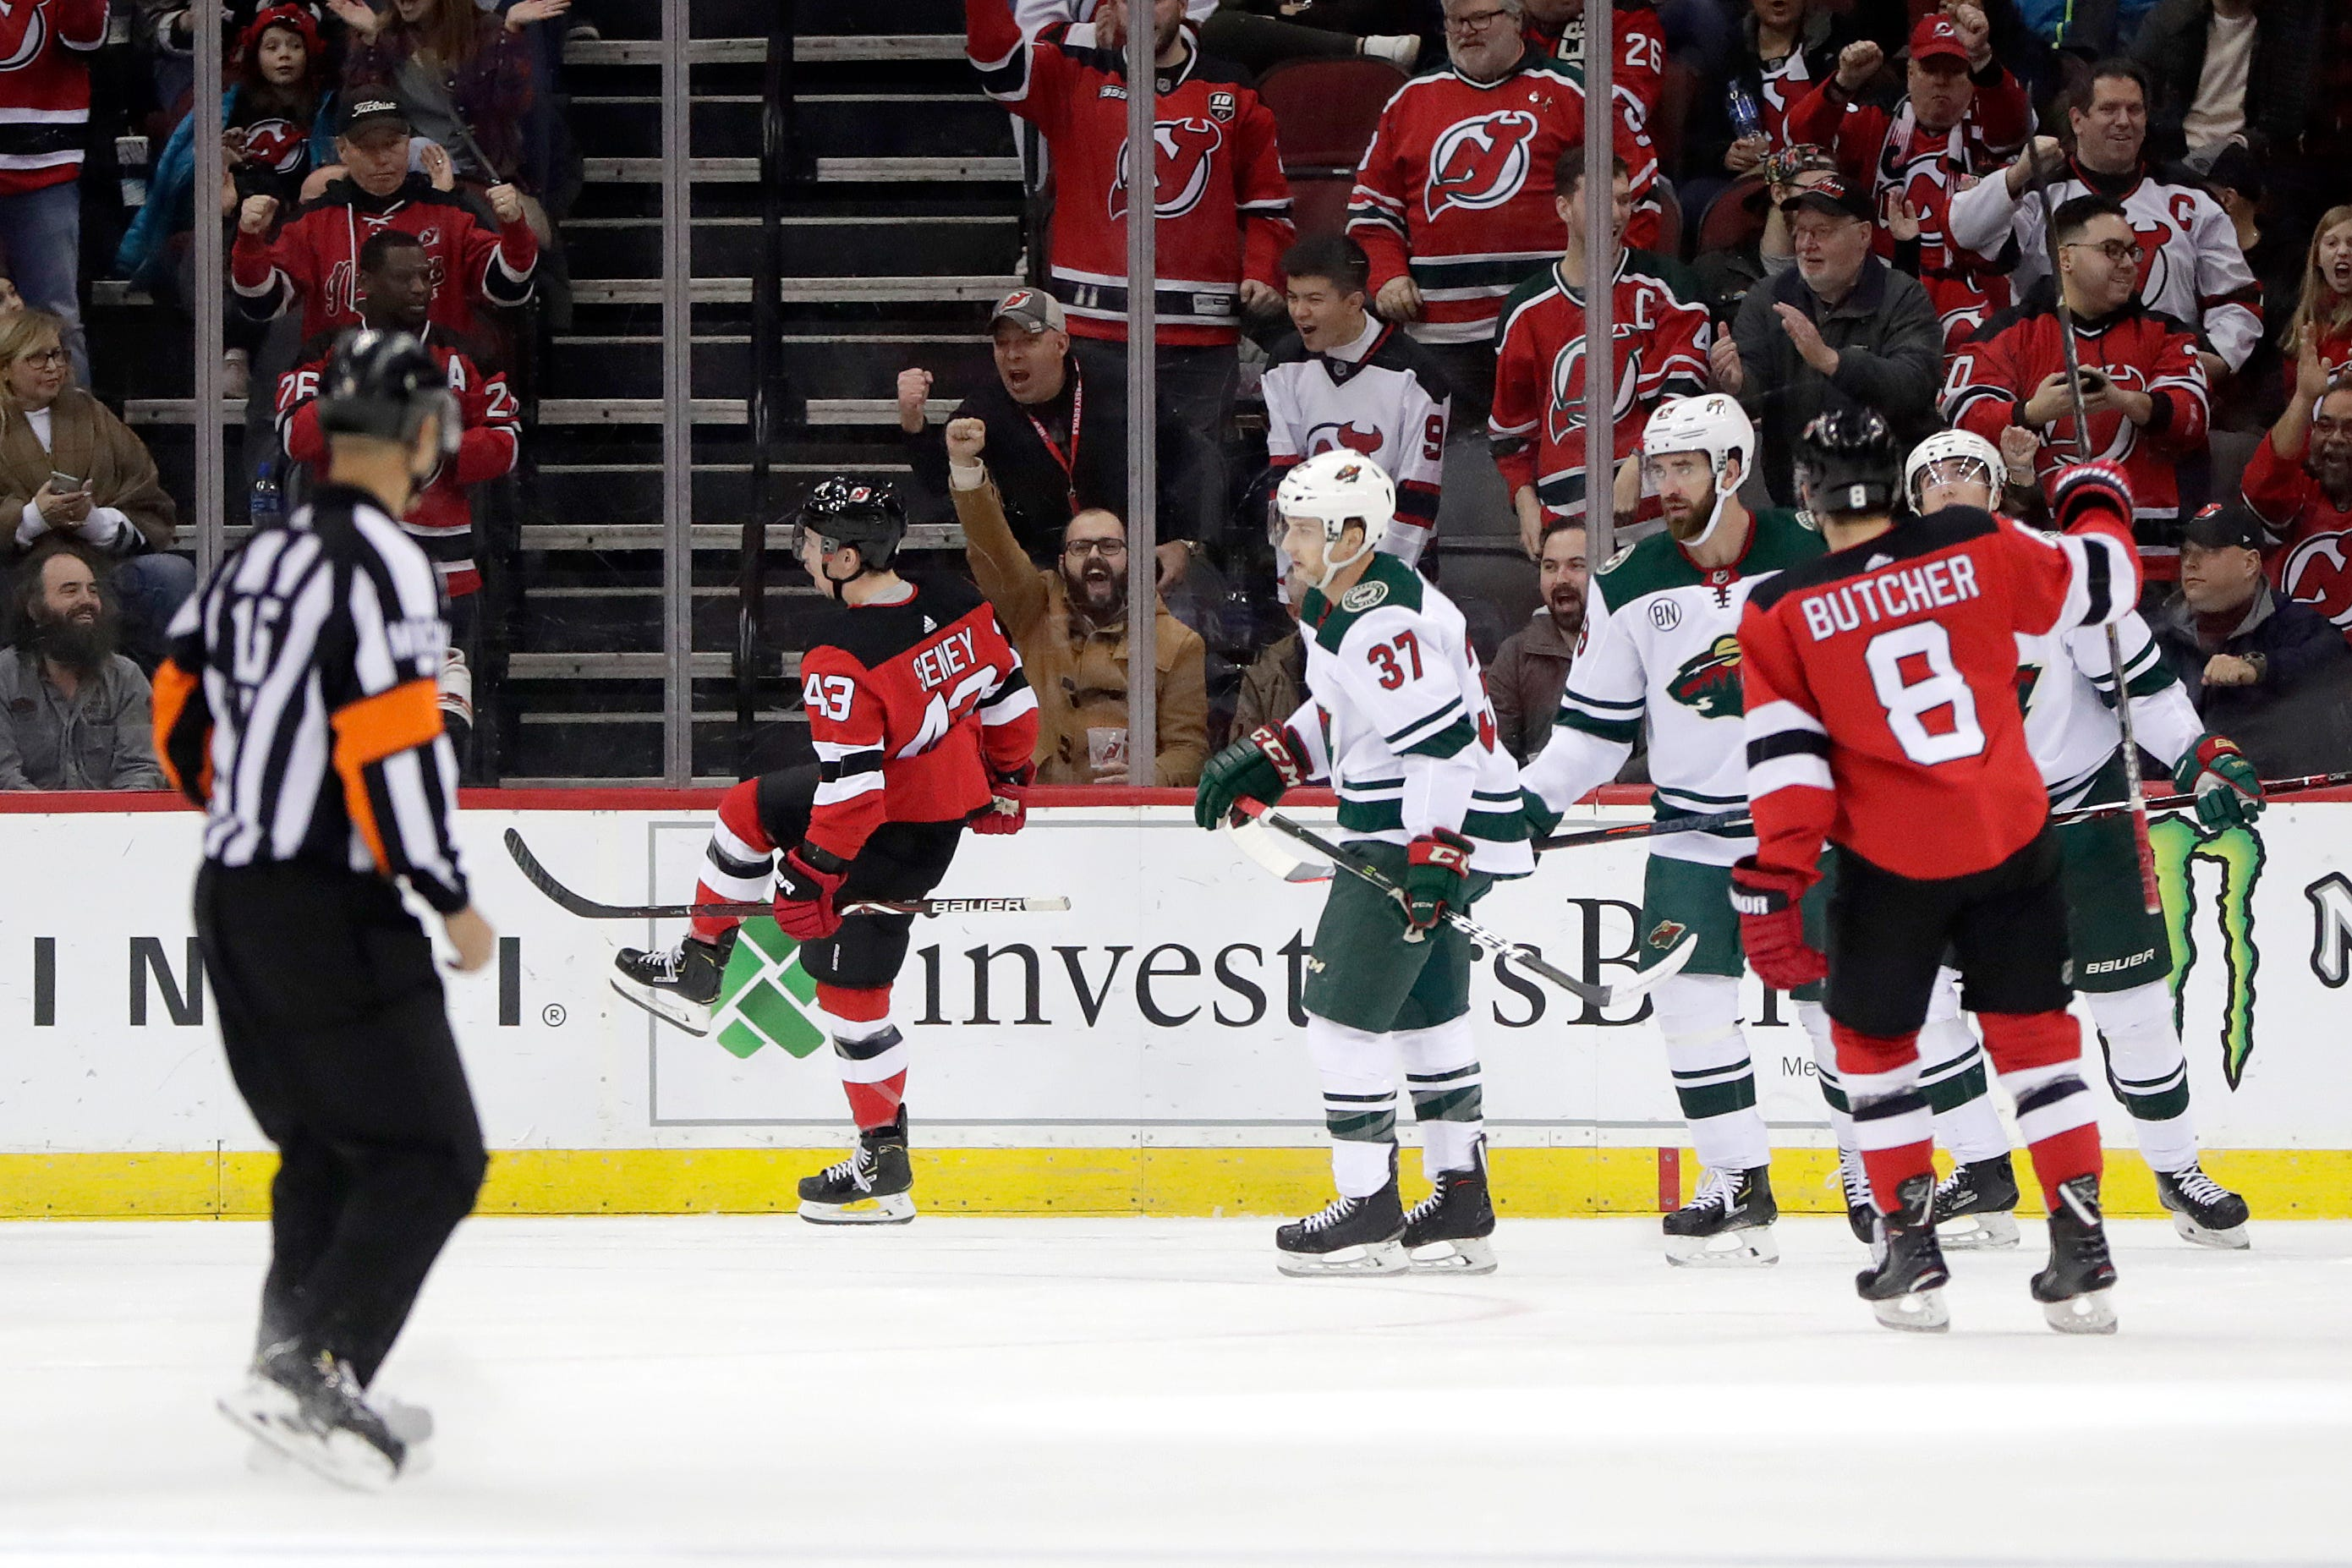 Parise scores go-ahead goal, Wild snap 4-game losing streak